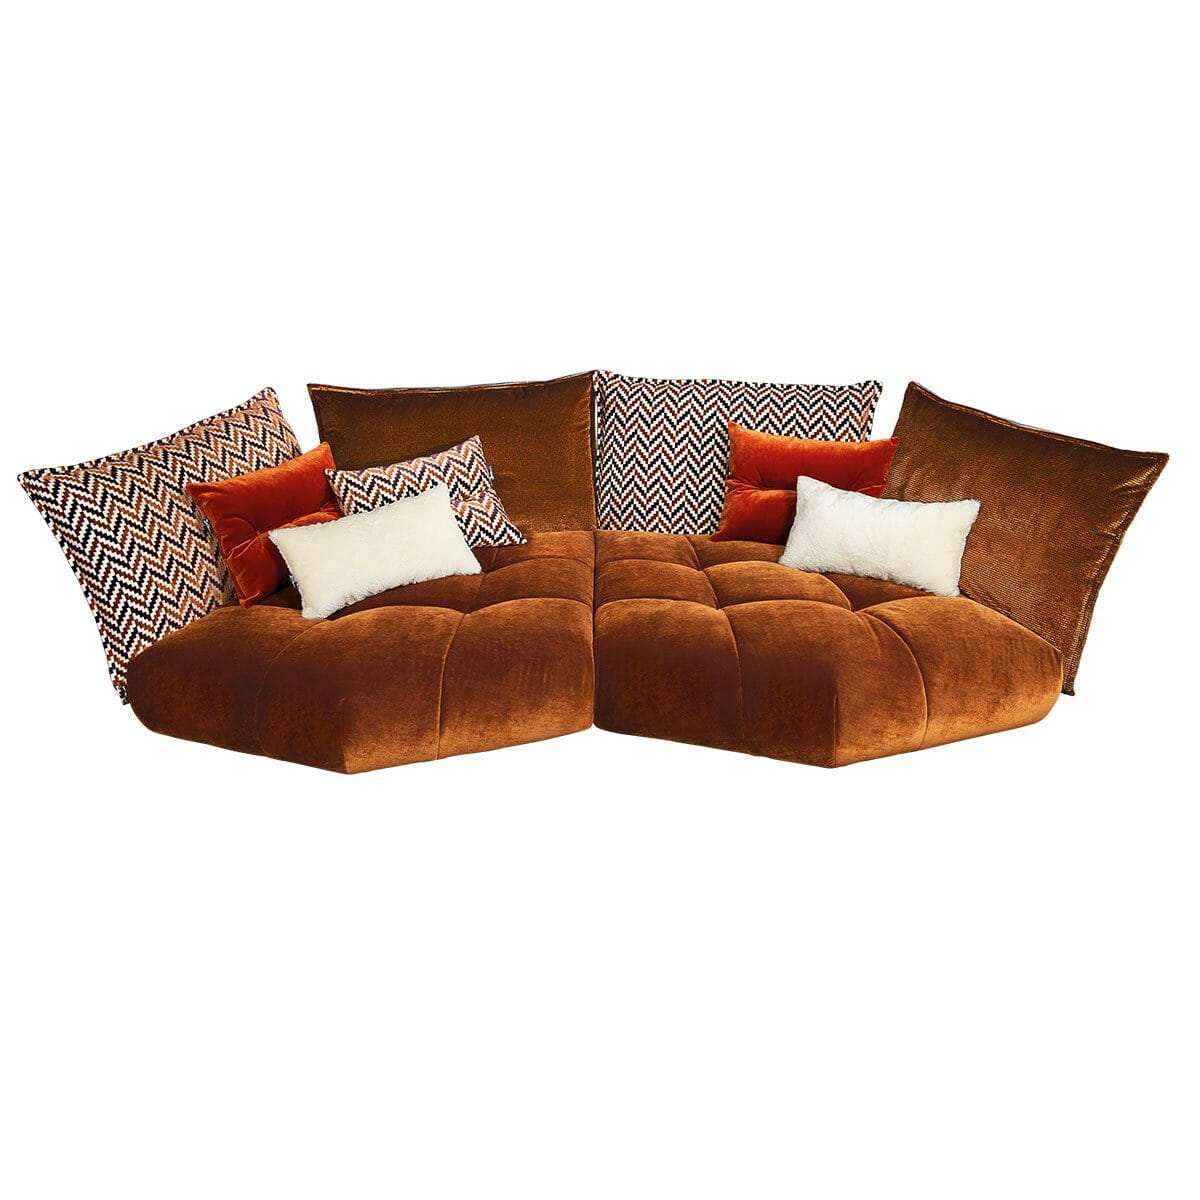 Bretz Sofa MATILDA G116 in rehbraun-spicy